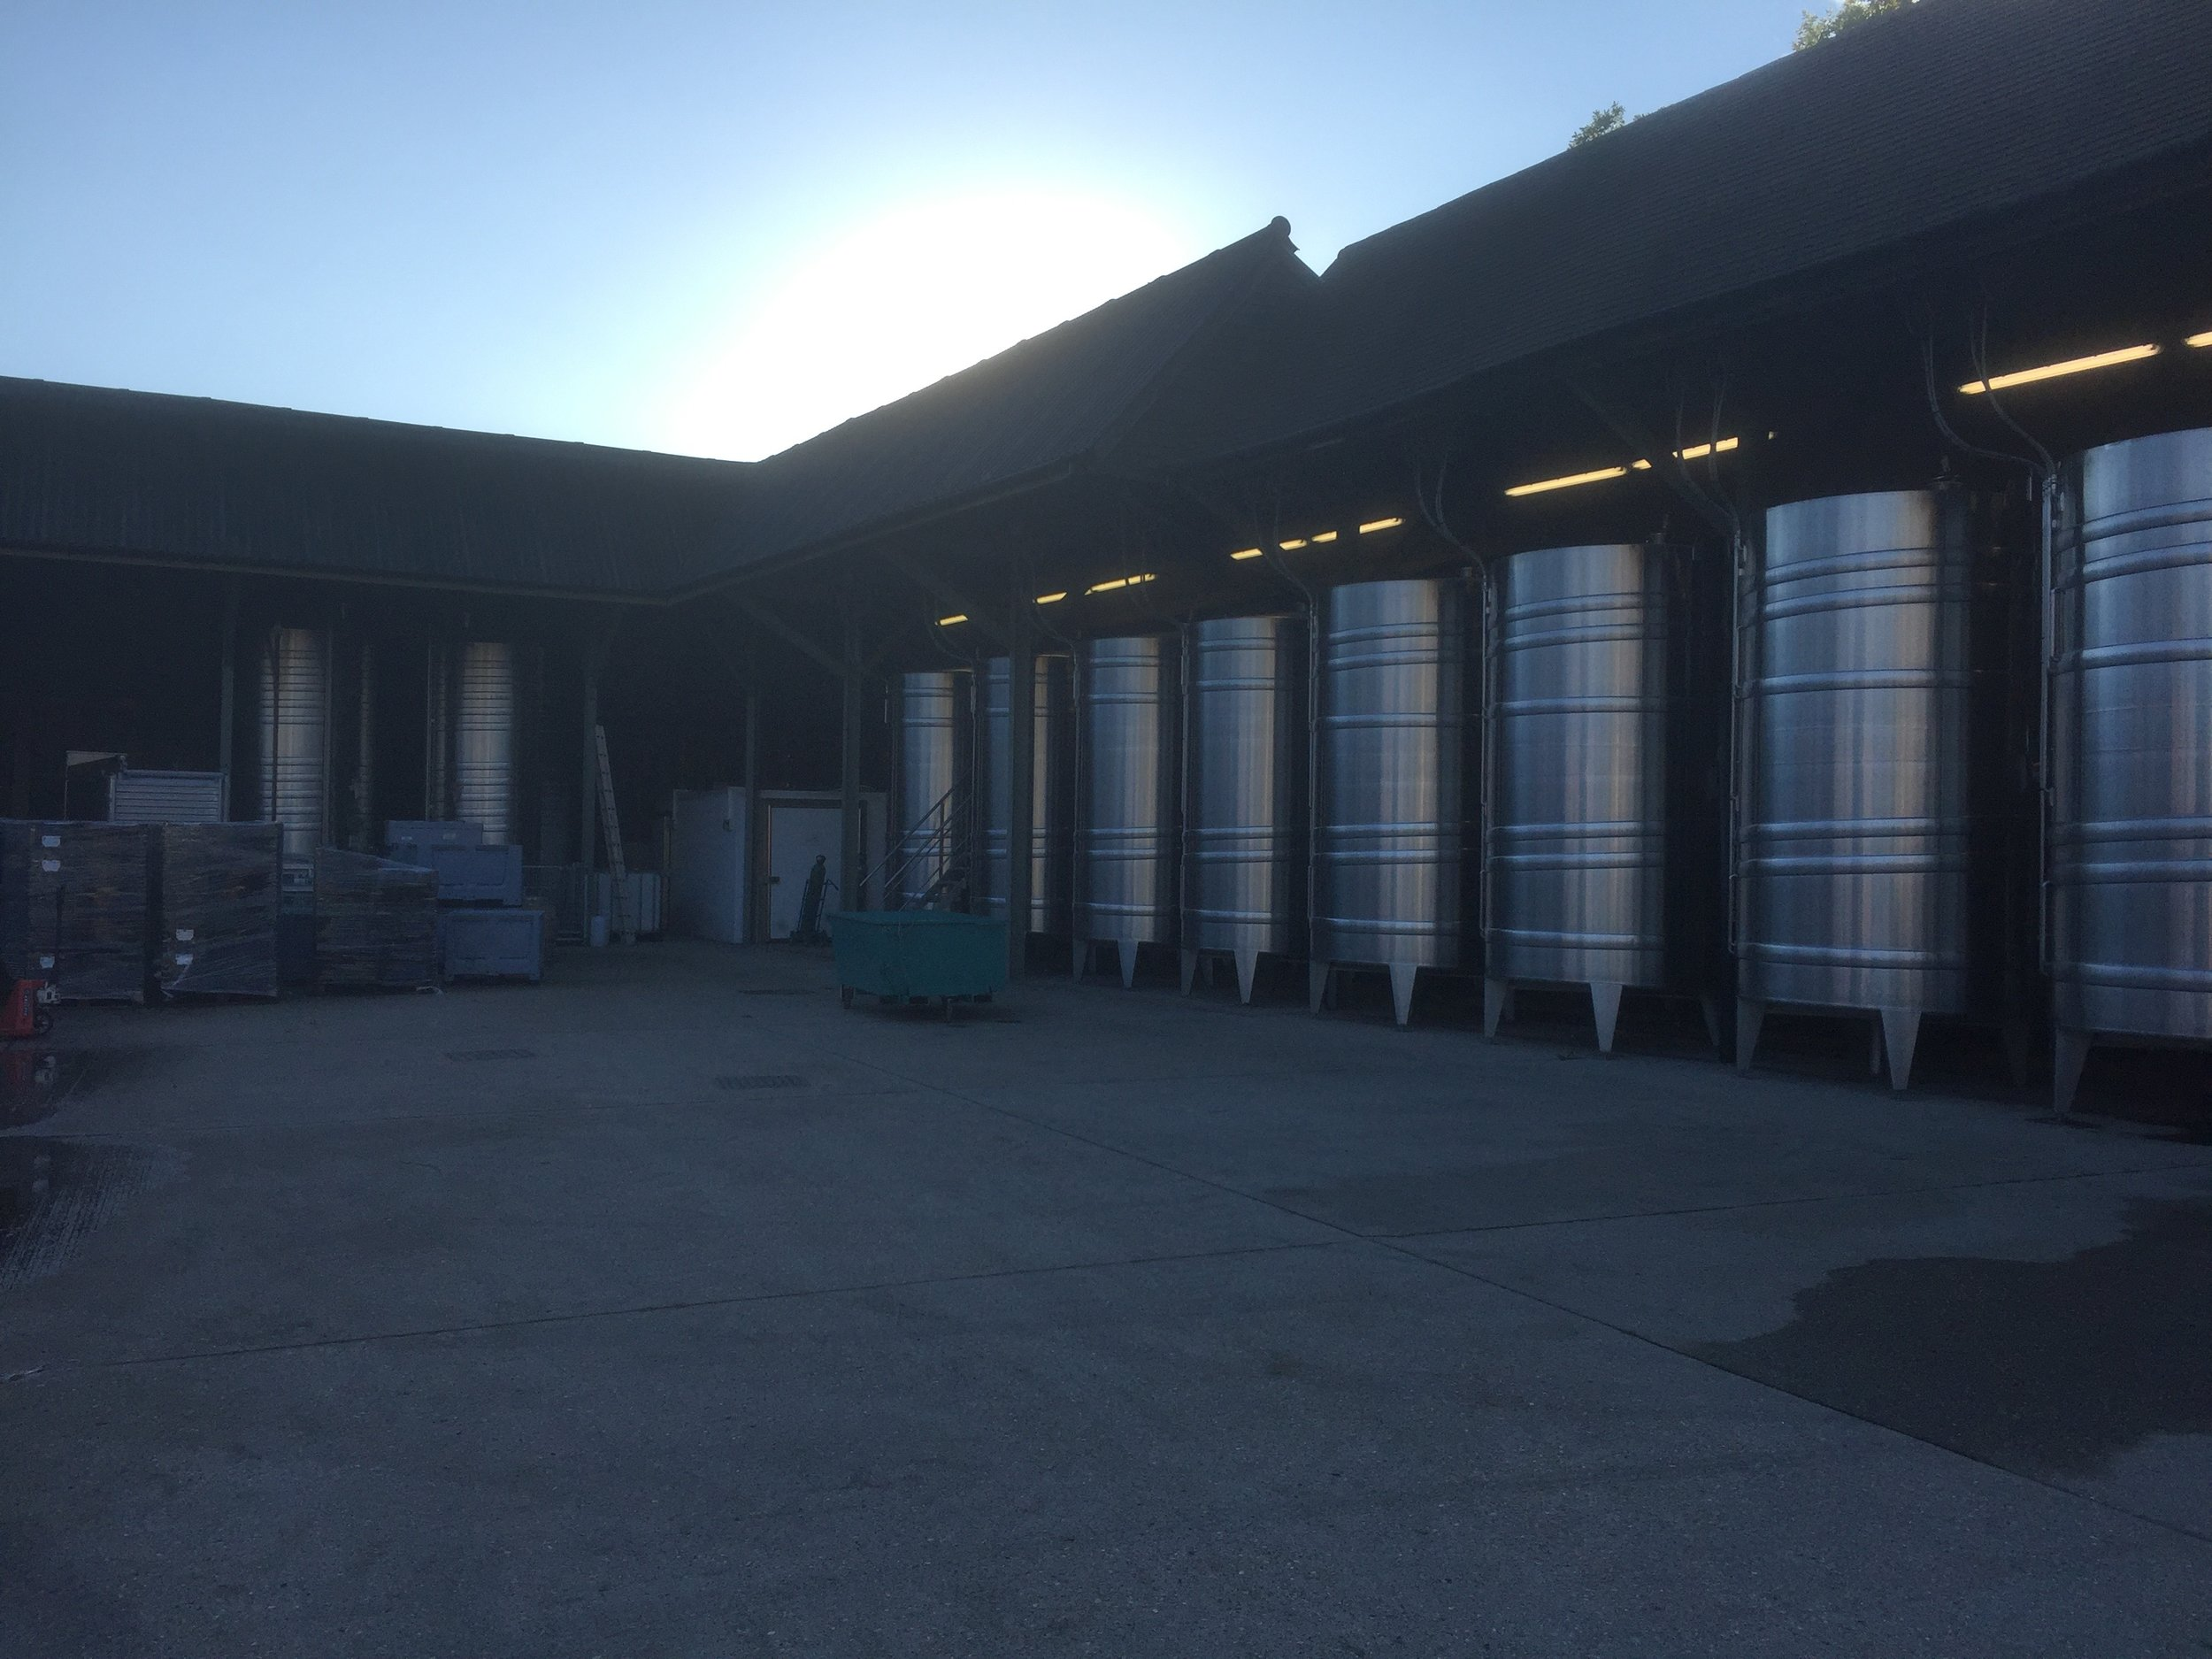 Winery tanks stand in splendour